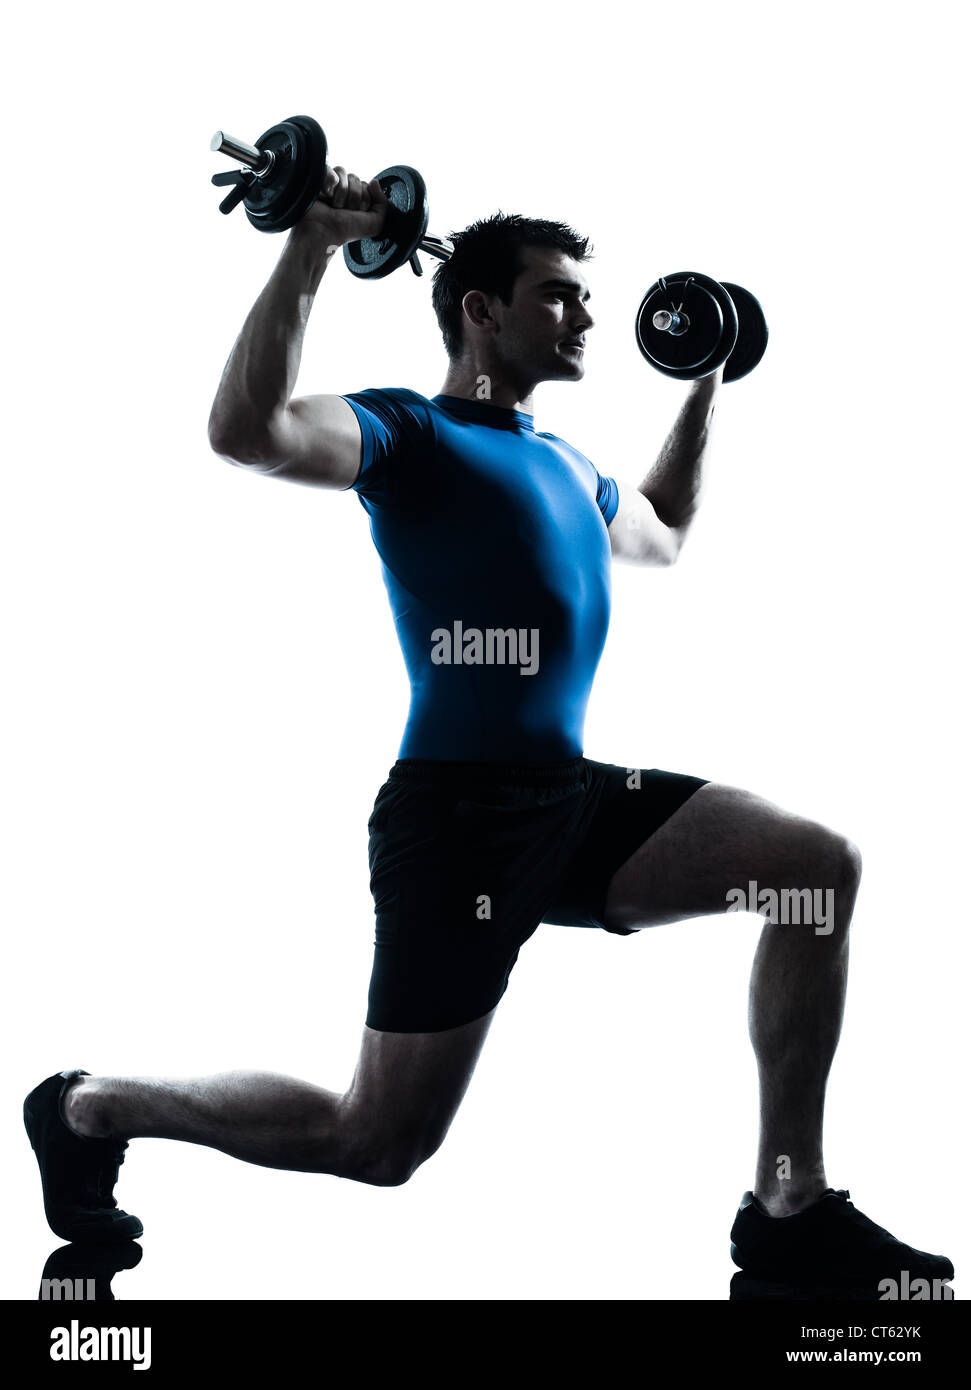 one caucasian man exercising weight training workout fitness in silhouette studio  isolated on white background - Stock Image